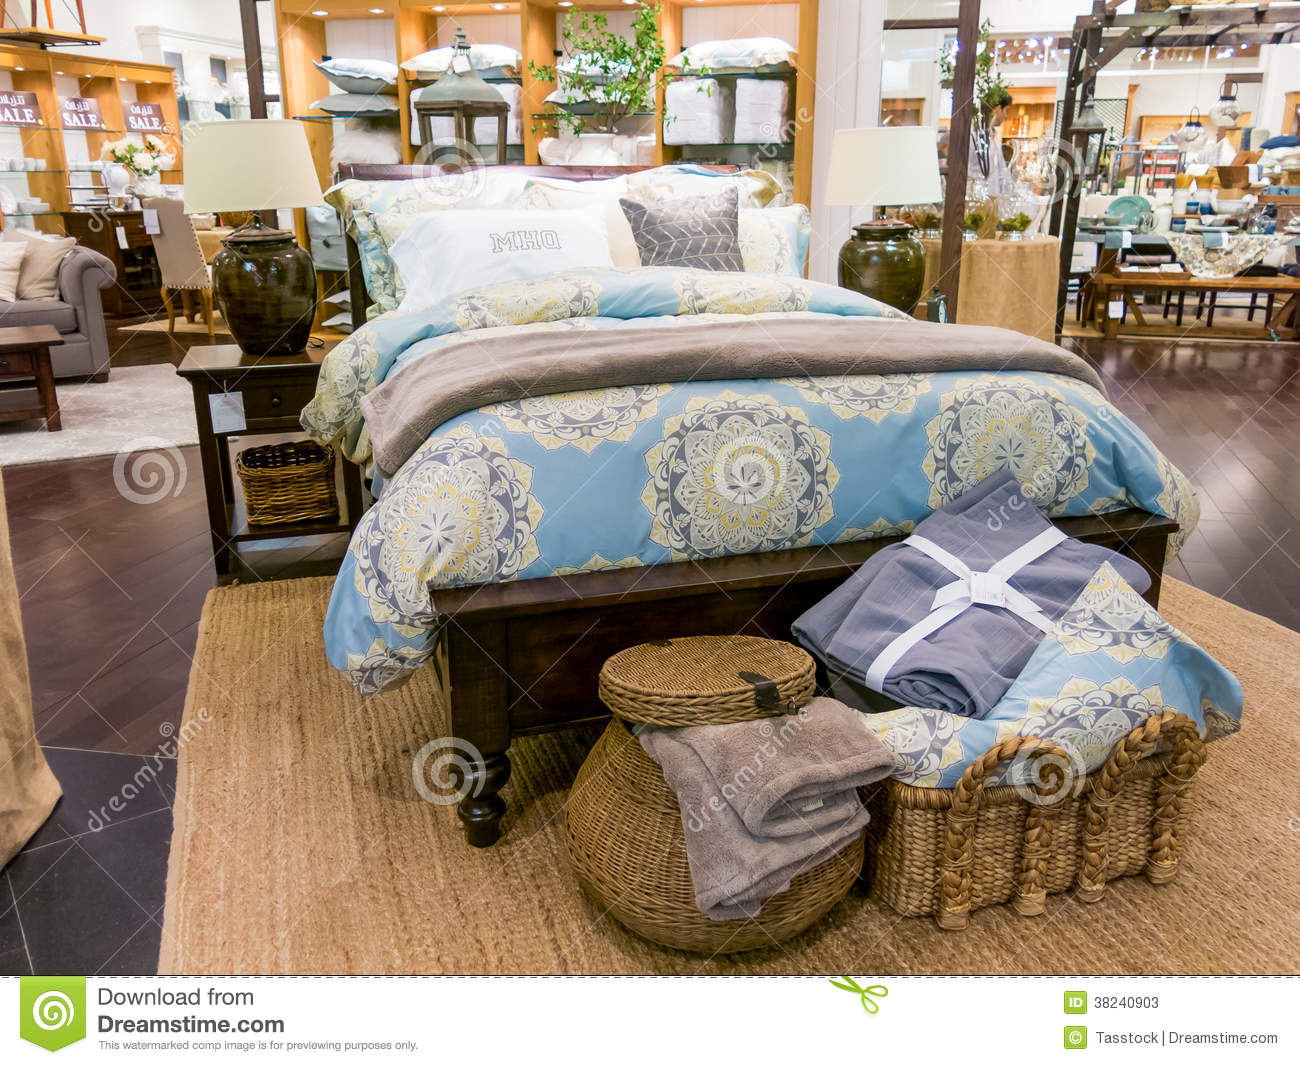 Home decor store in dubai mall editorial stock photo for House of decor